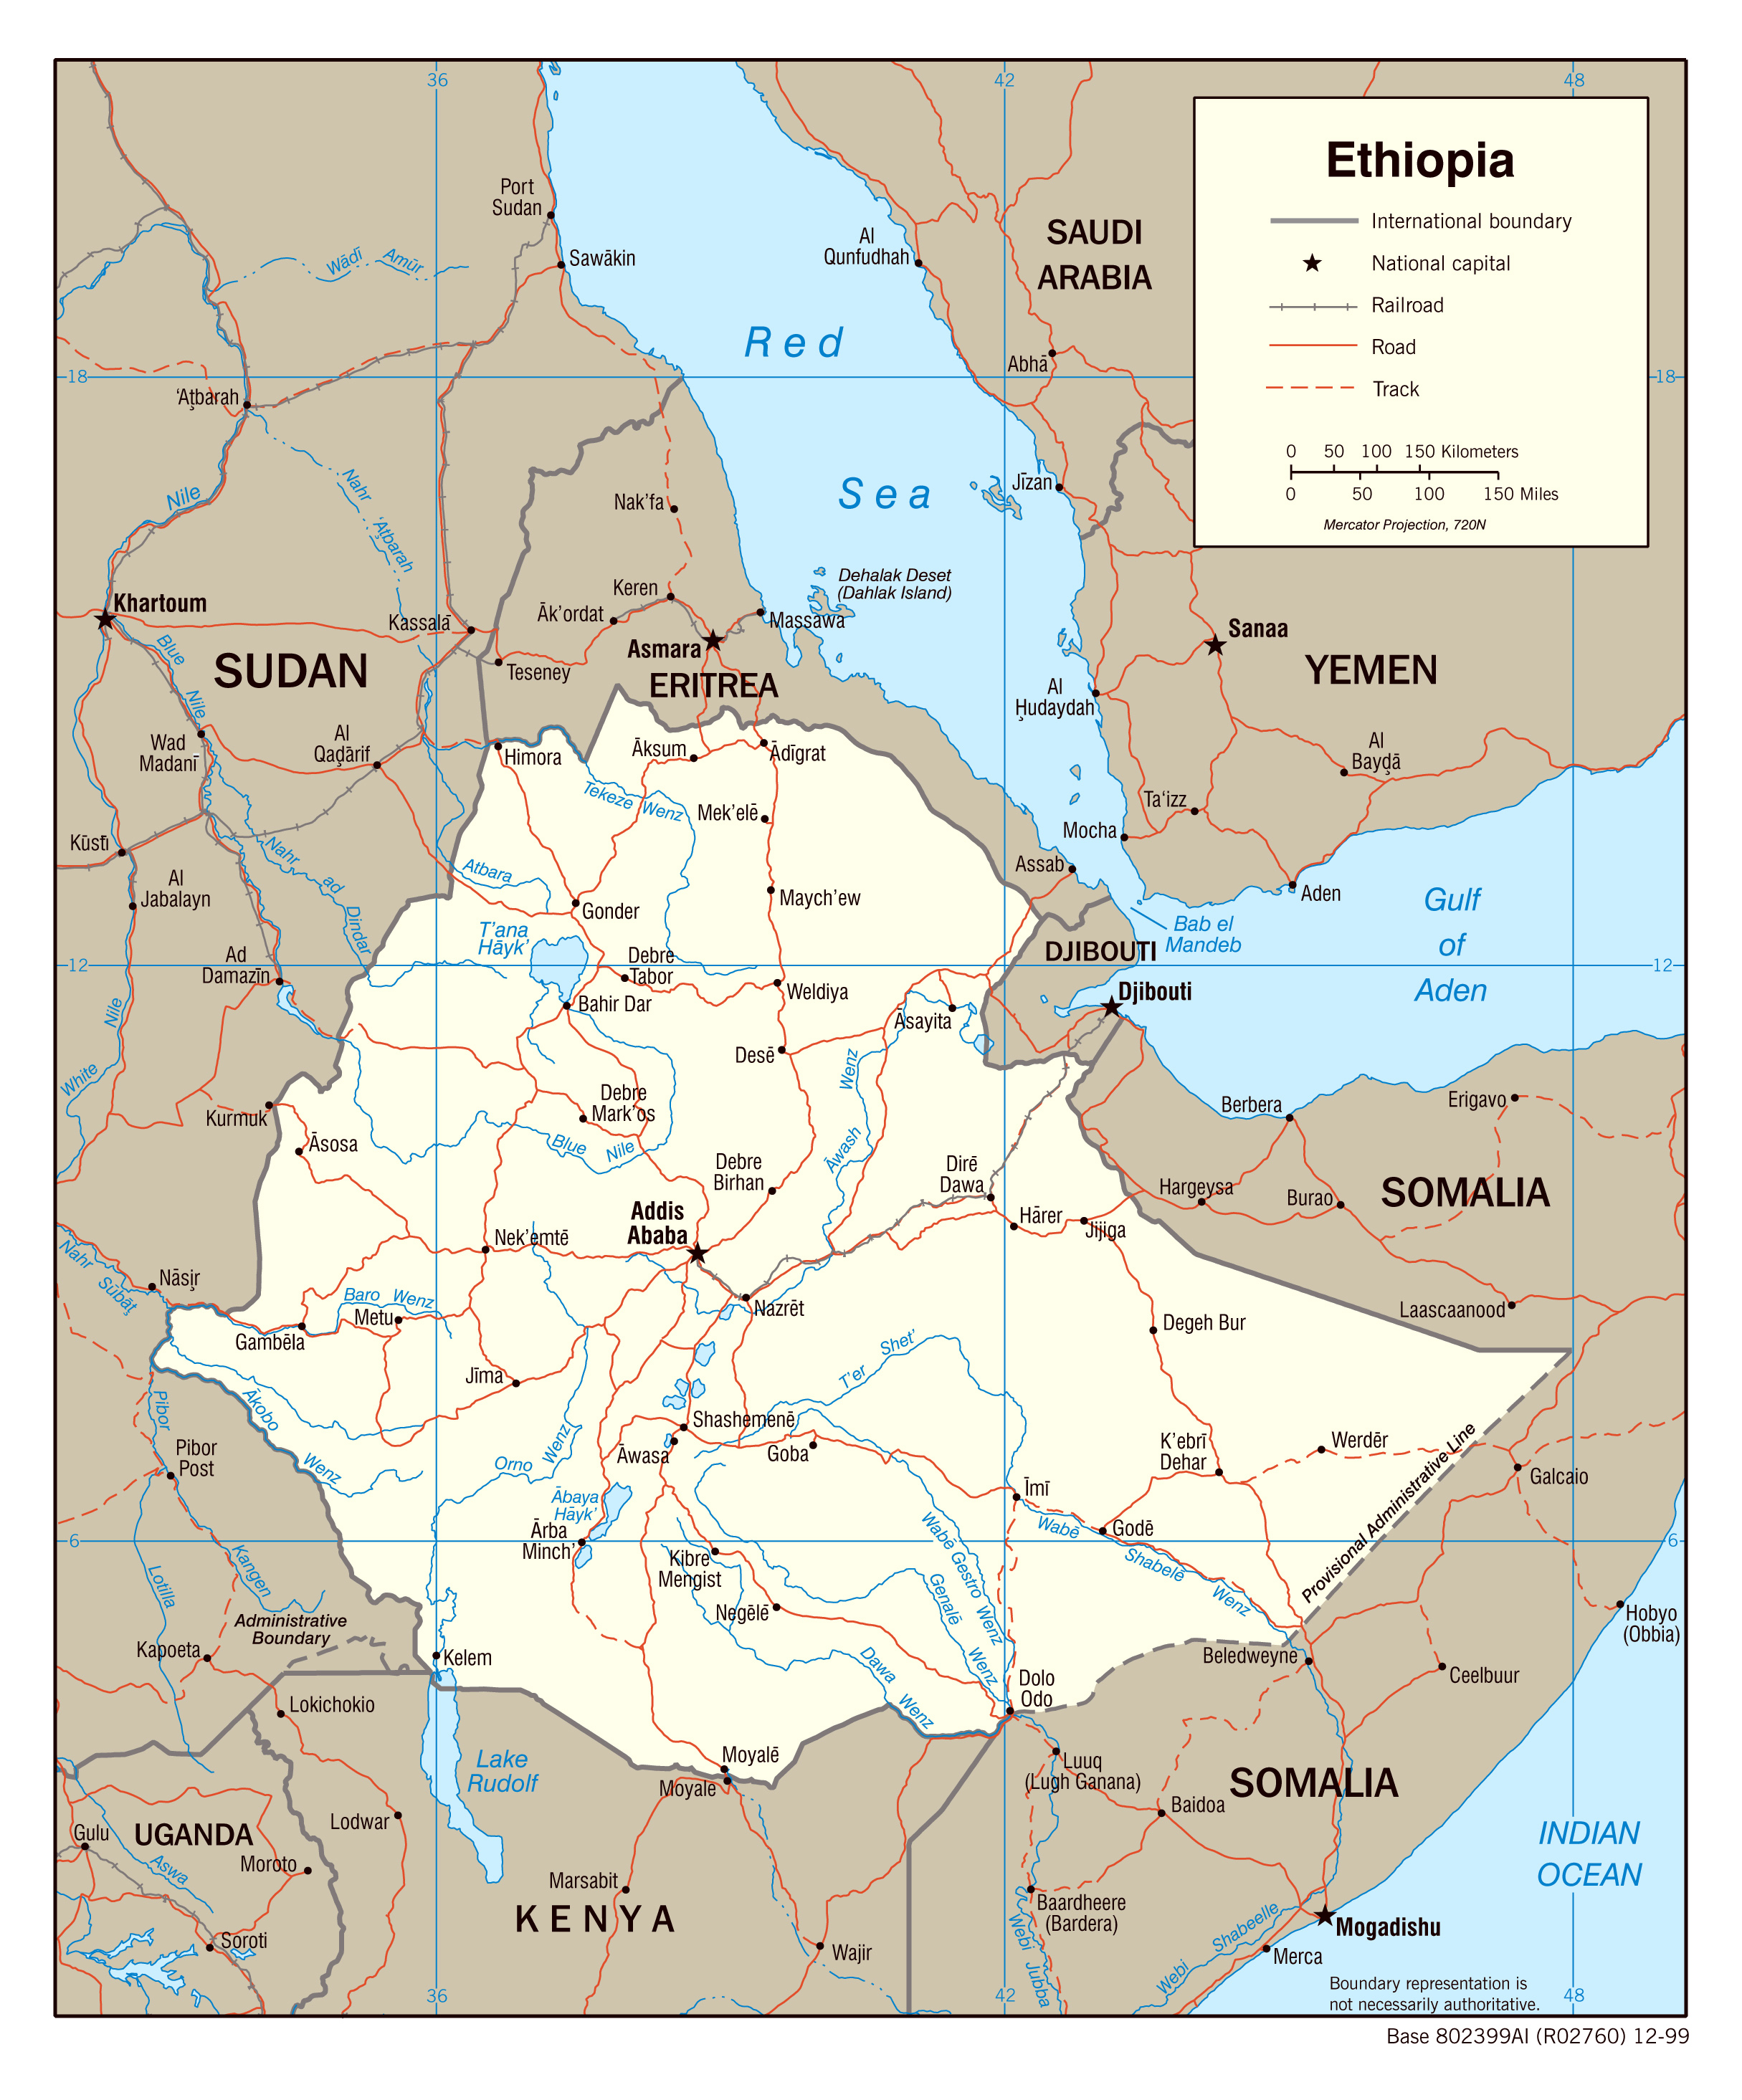 detailed_political_map_of_ethiopia